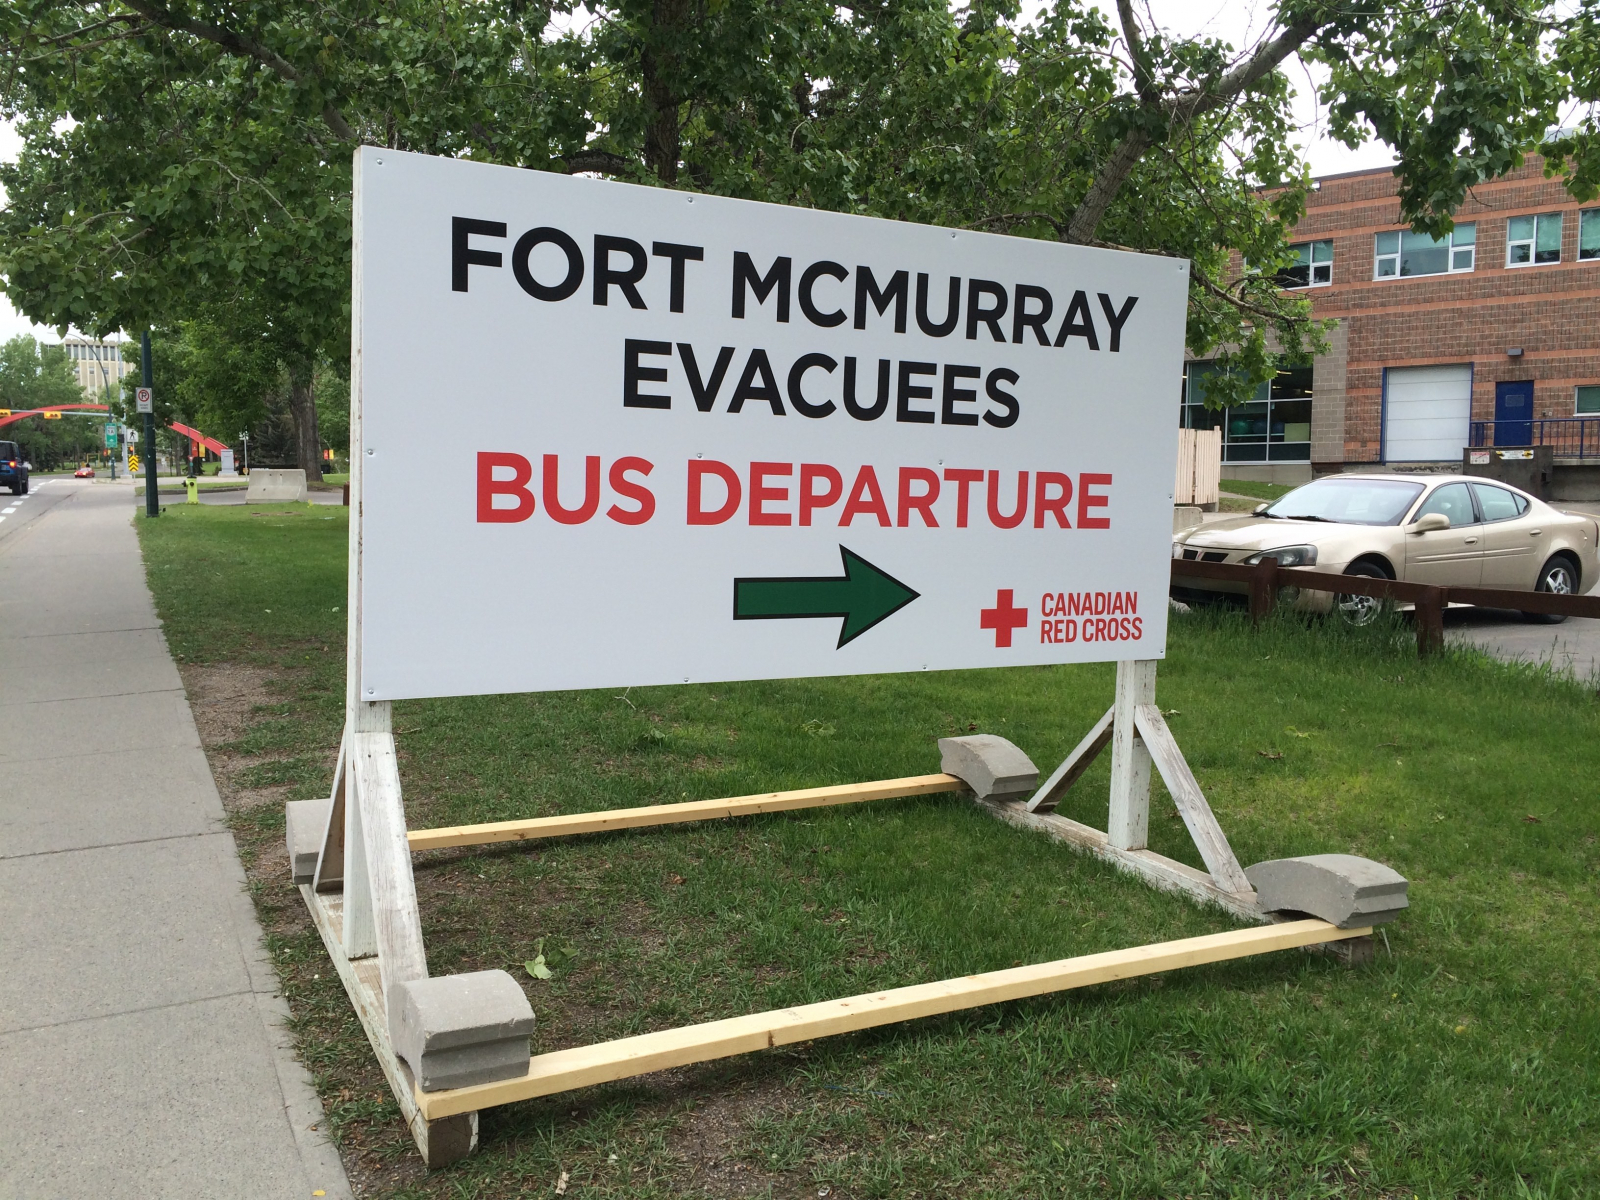 Fort McMurray, evacuees, wildfire, University of Calgary, reception centre